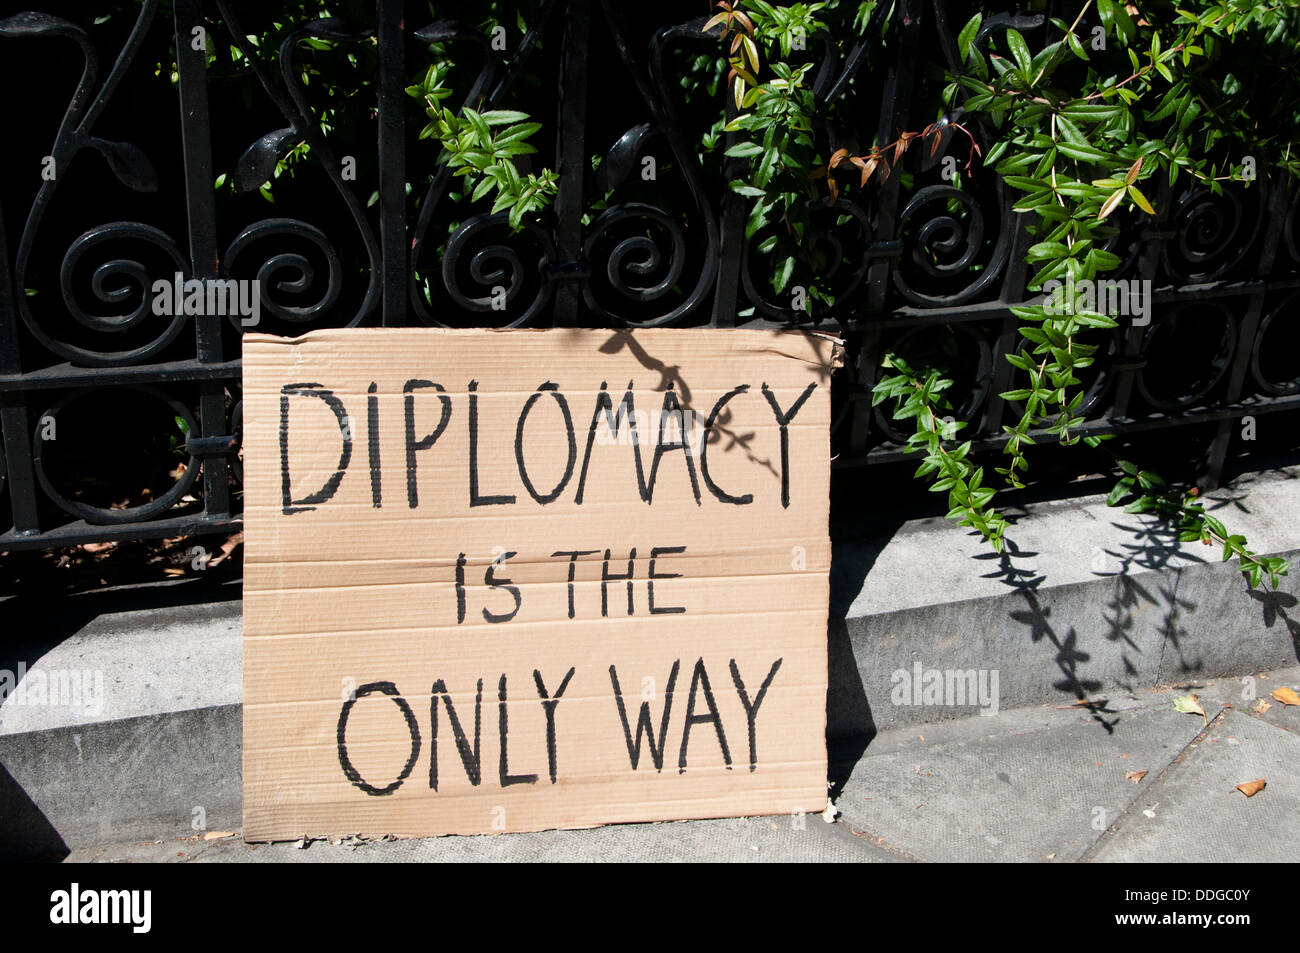 A hand painted sign on cardboard saying 'Diplomacy is the only way', at demo against intervention in Syria - Stock Image